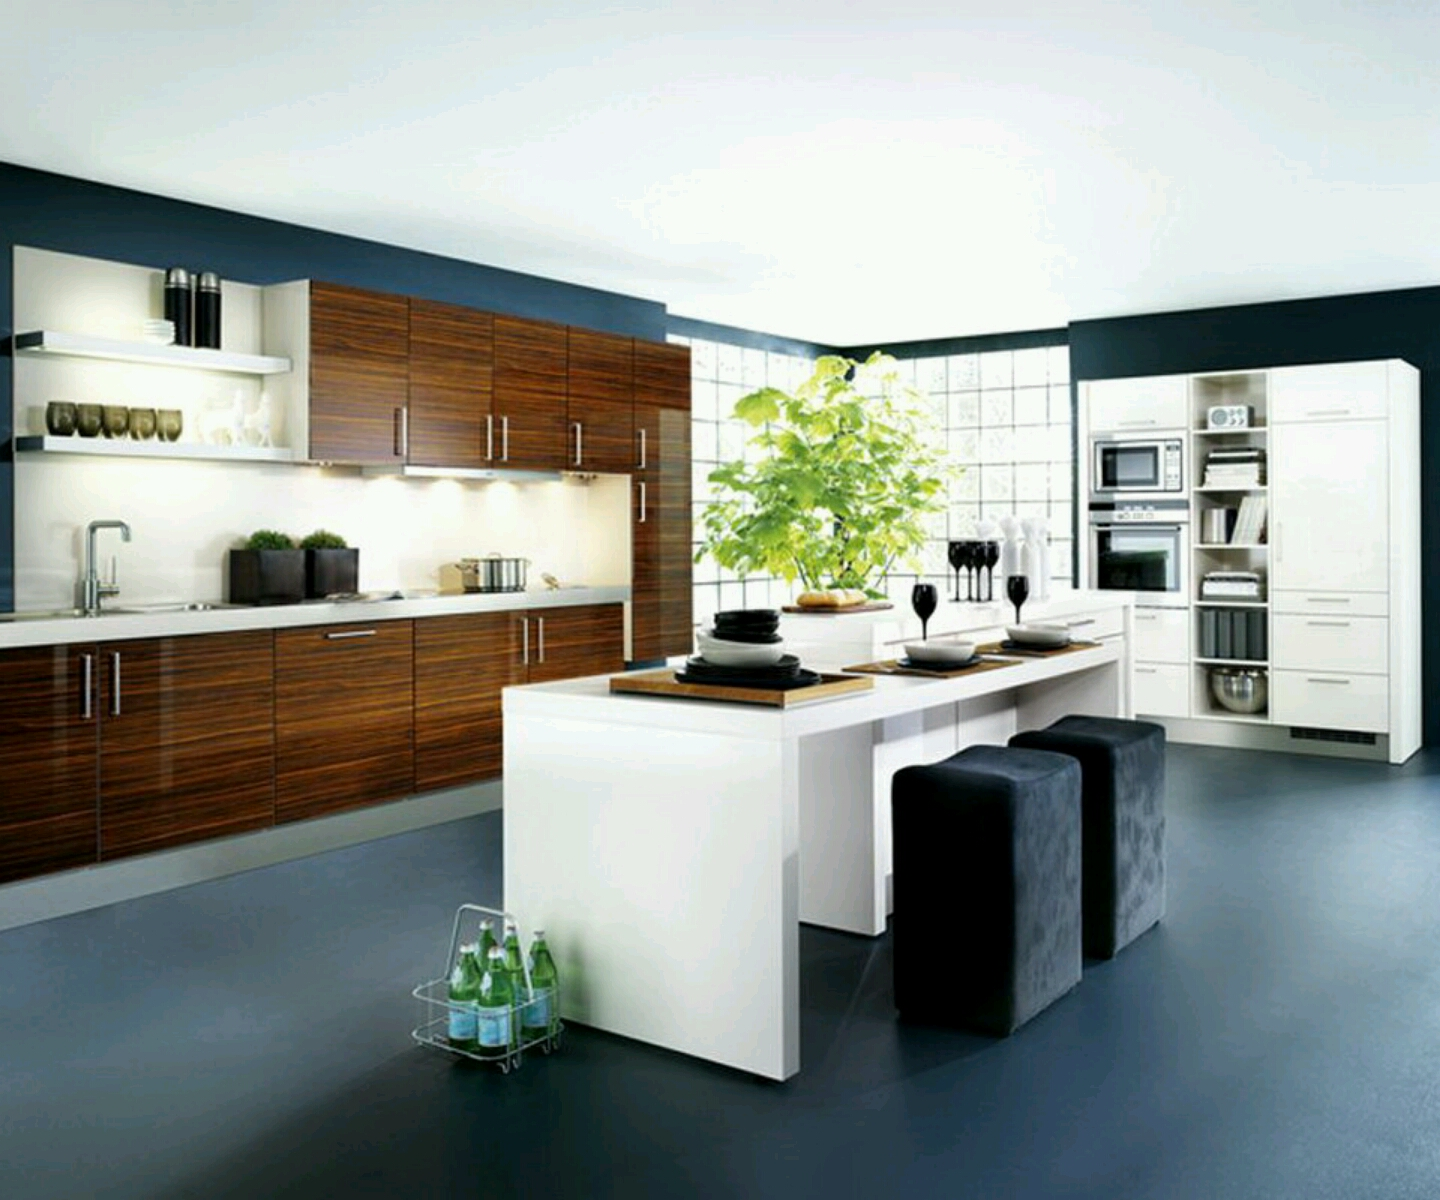 New home designs latest kitchen cabinets designs modern for Modern kitchen design